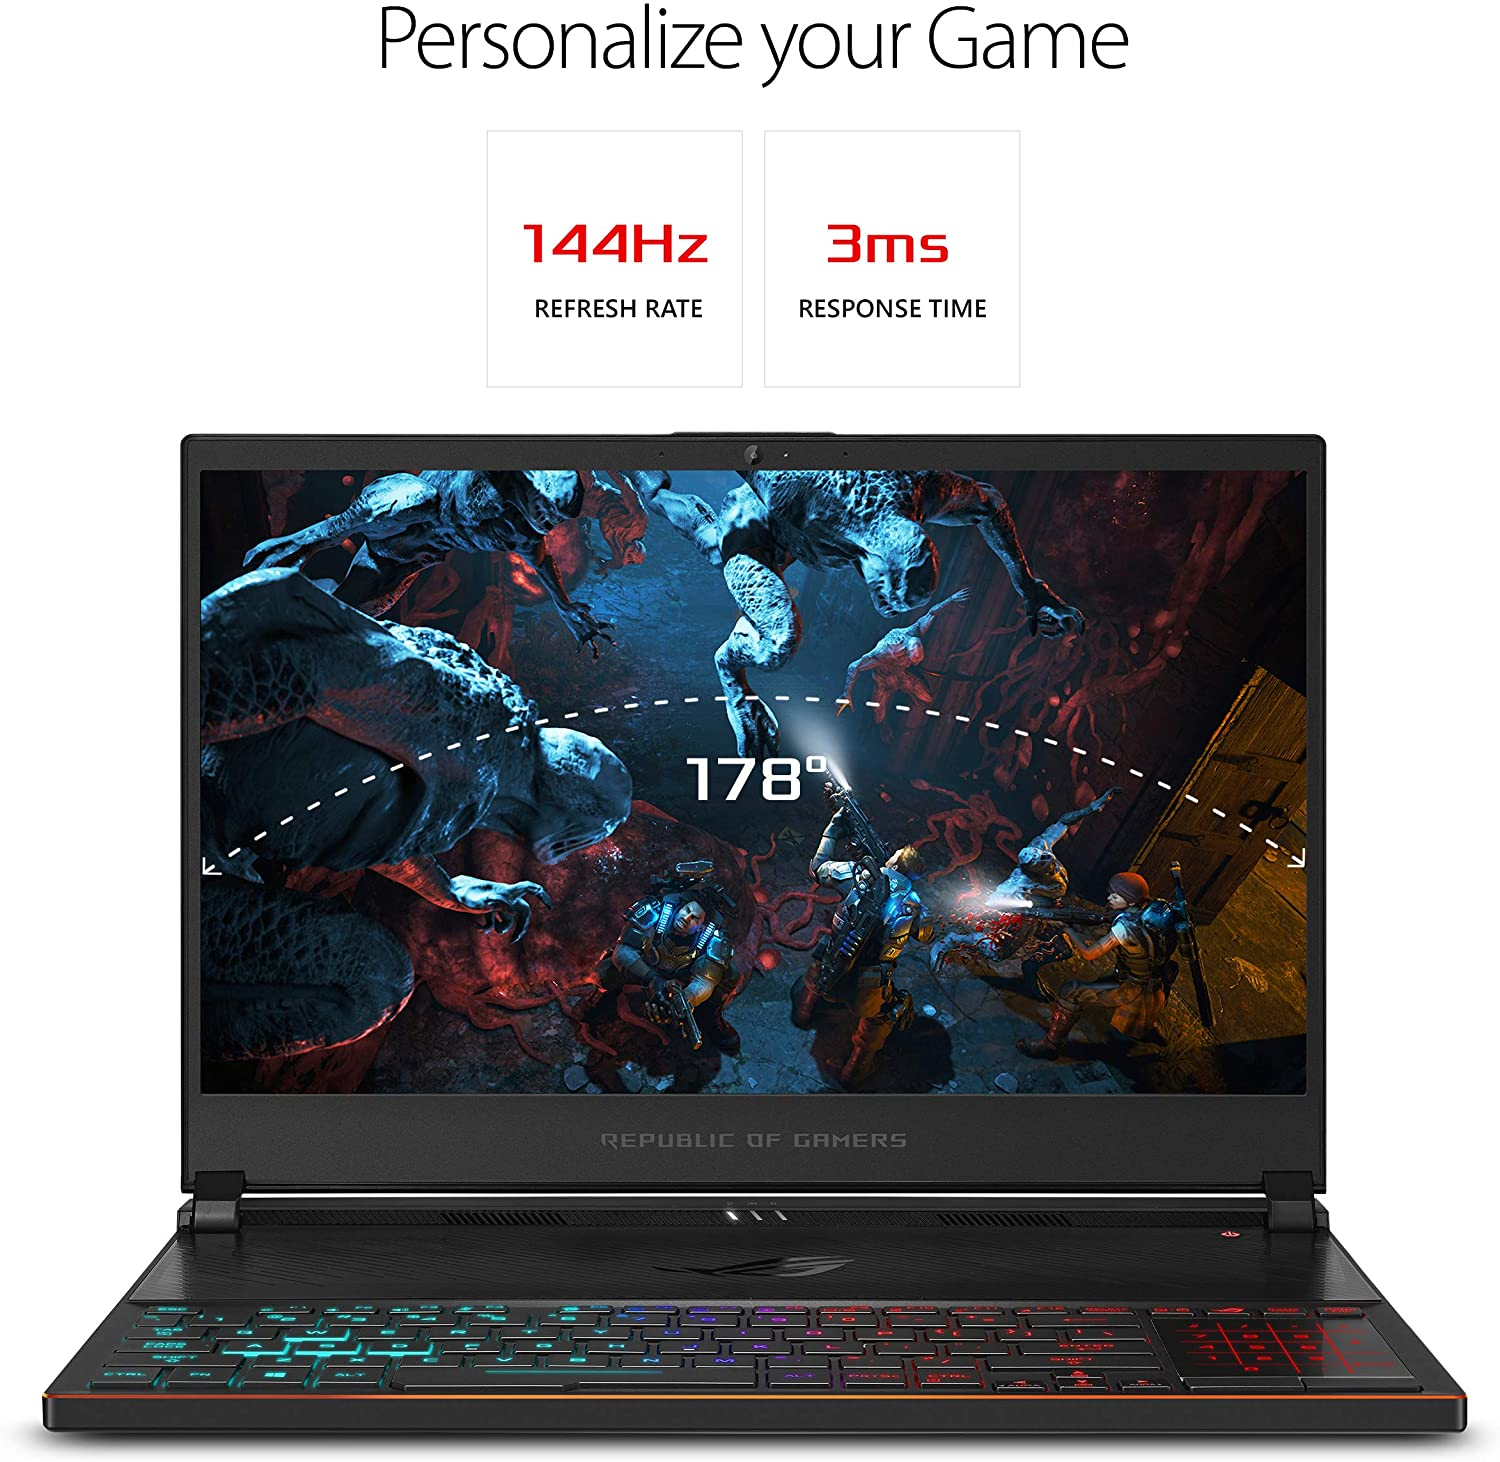 """ASUS ROG Zephyrus S Ultra Slim Gaming PC Laptop, 15.6"""" 144Hz IPS Type, Intel Core i7-8750H CPU, GeForce GTX 1070, 16GB DDR4, 512GB PCIe SSD, Military-Grade Metal Chassis, Win 10 Home - GX531GS-AH76"""